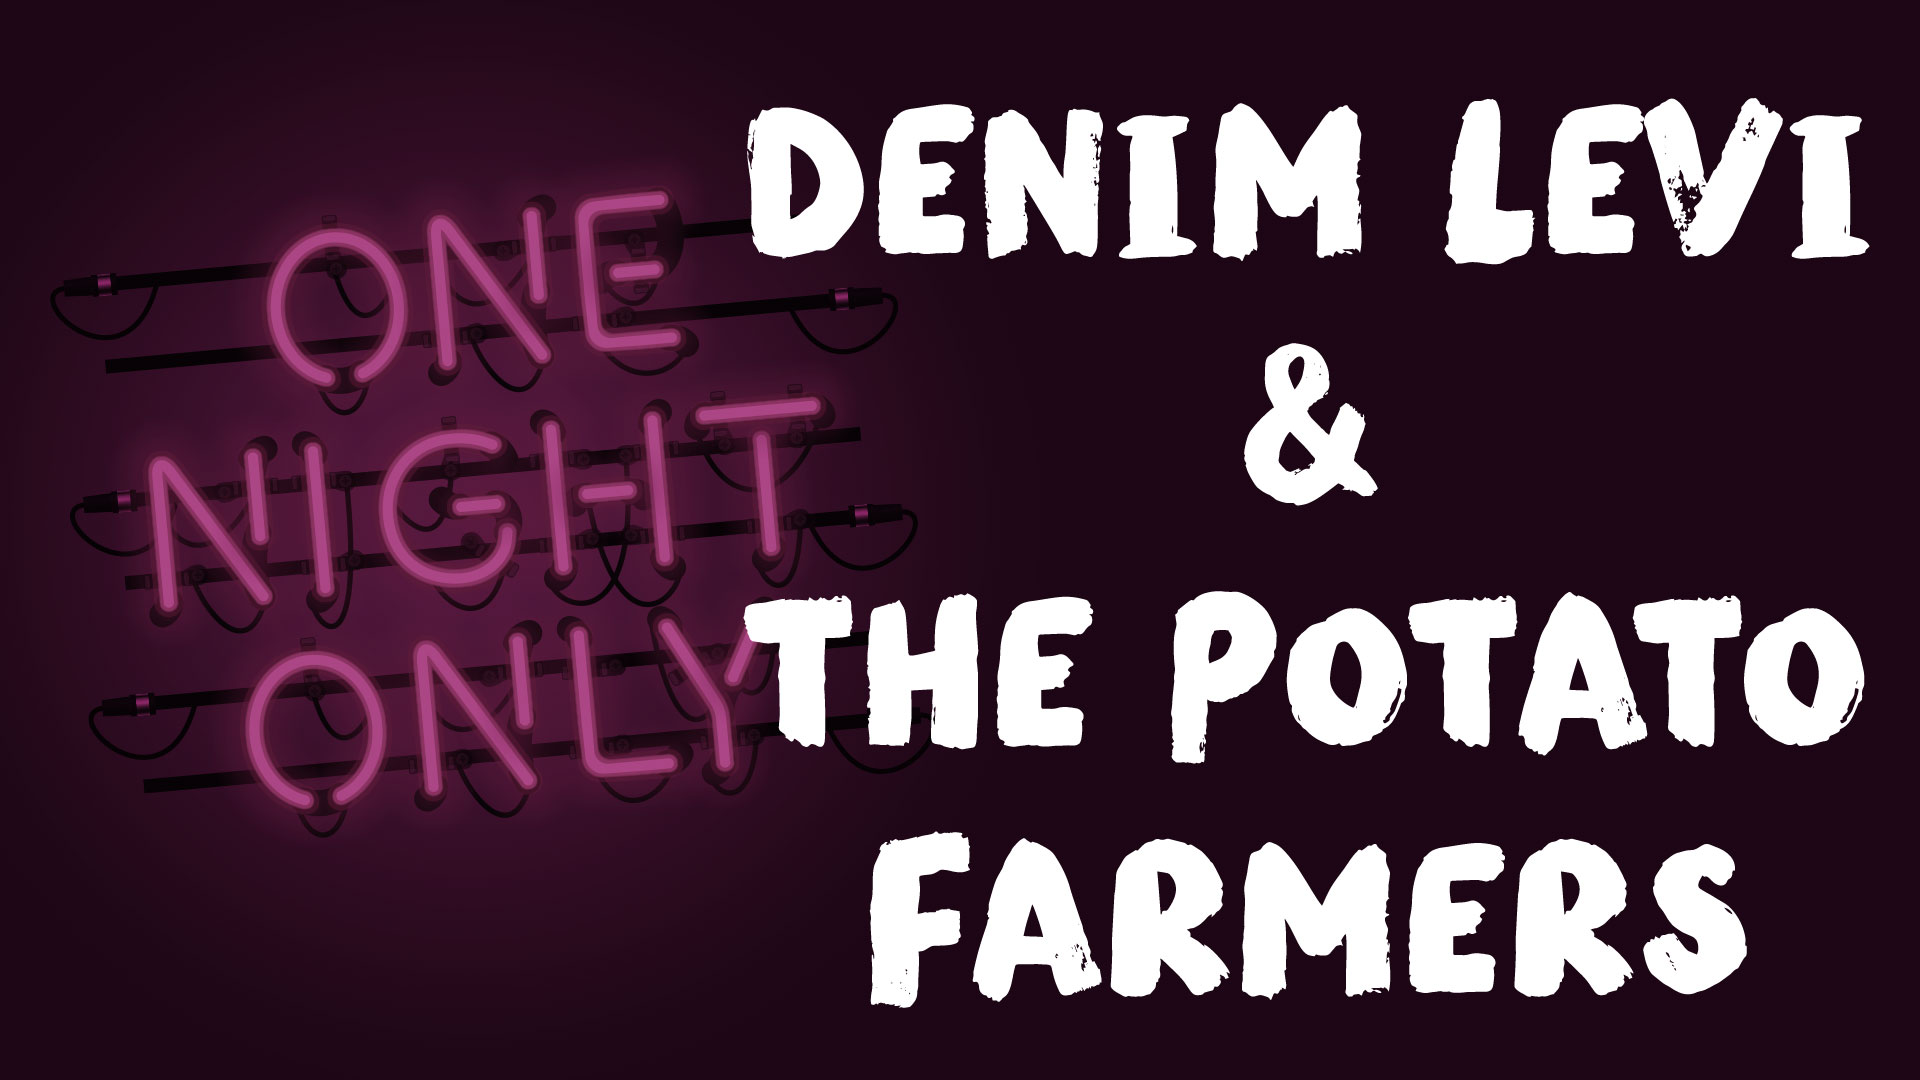 One Night Only: Denim Levi & The Potato Farmers